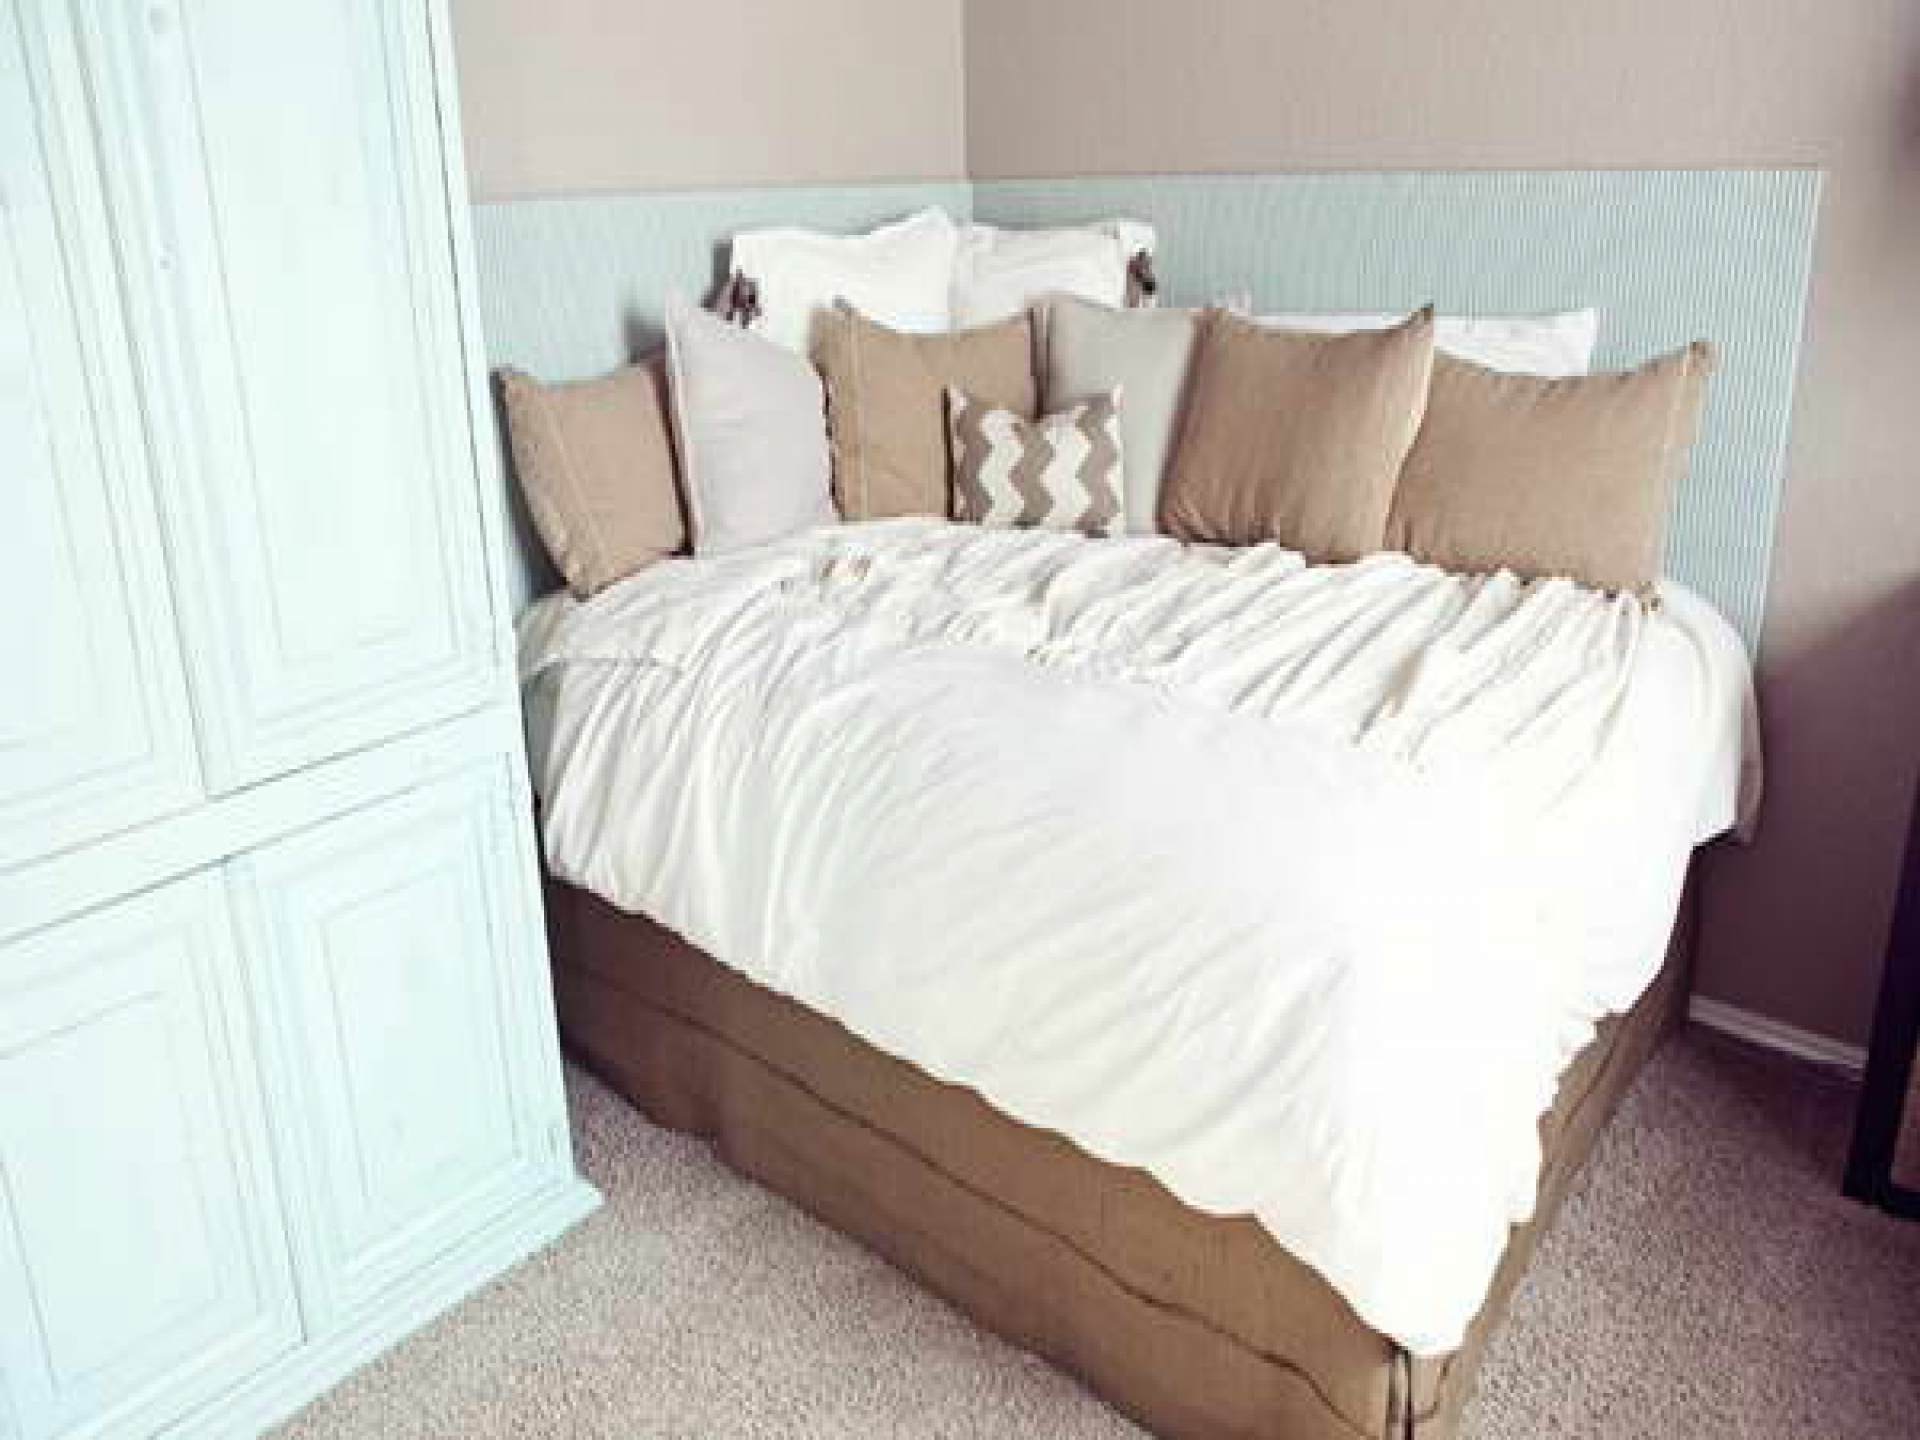 Saving Small Bedroom Spaces With Corner Bed Space Furniture Ideas Money Space Saving Bunk Modern Bedrooms Pink Beds Apppie Org